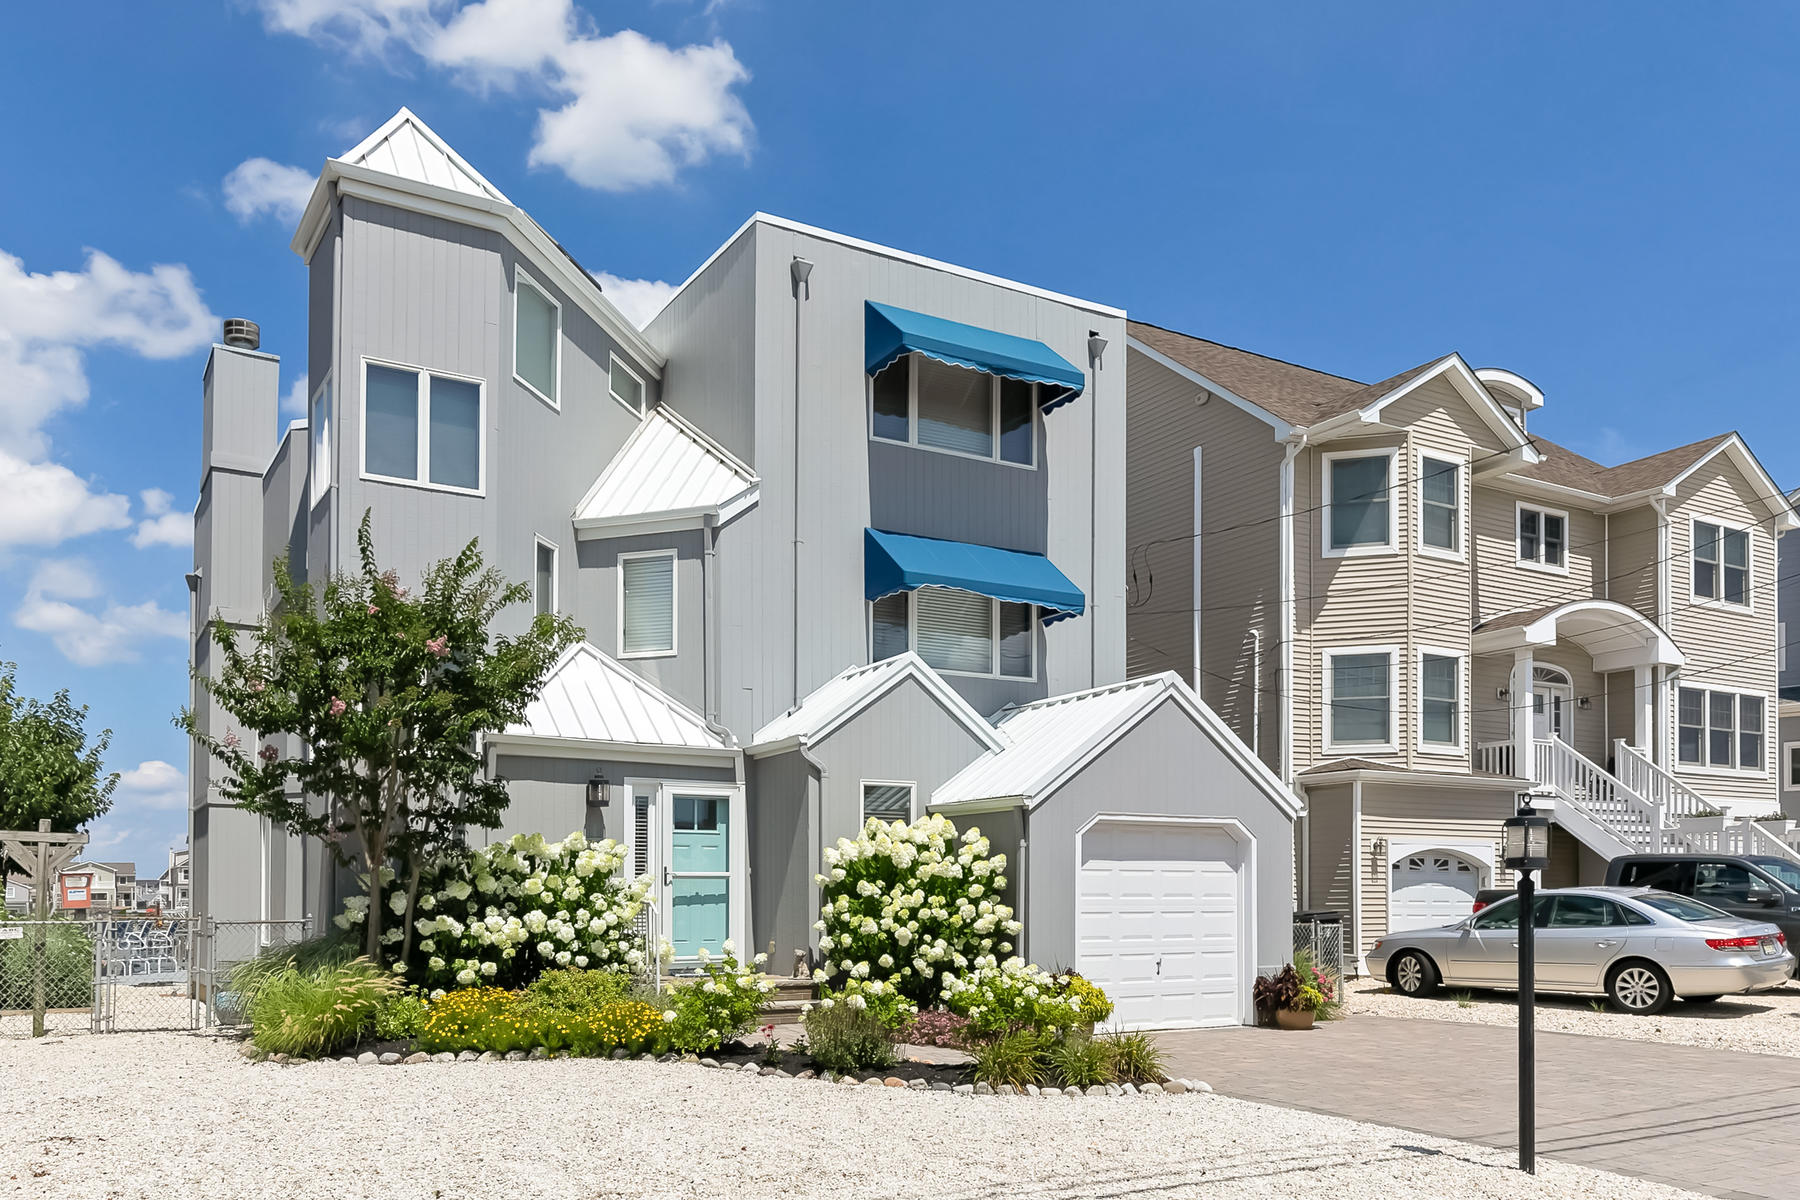 Single Family Homes for Active at Completely Updated And Meticulously Maintained Custom Waterfront Home 254 Harbor Court Normandy Beach, New Jersey 08739 United States